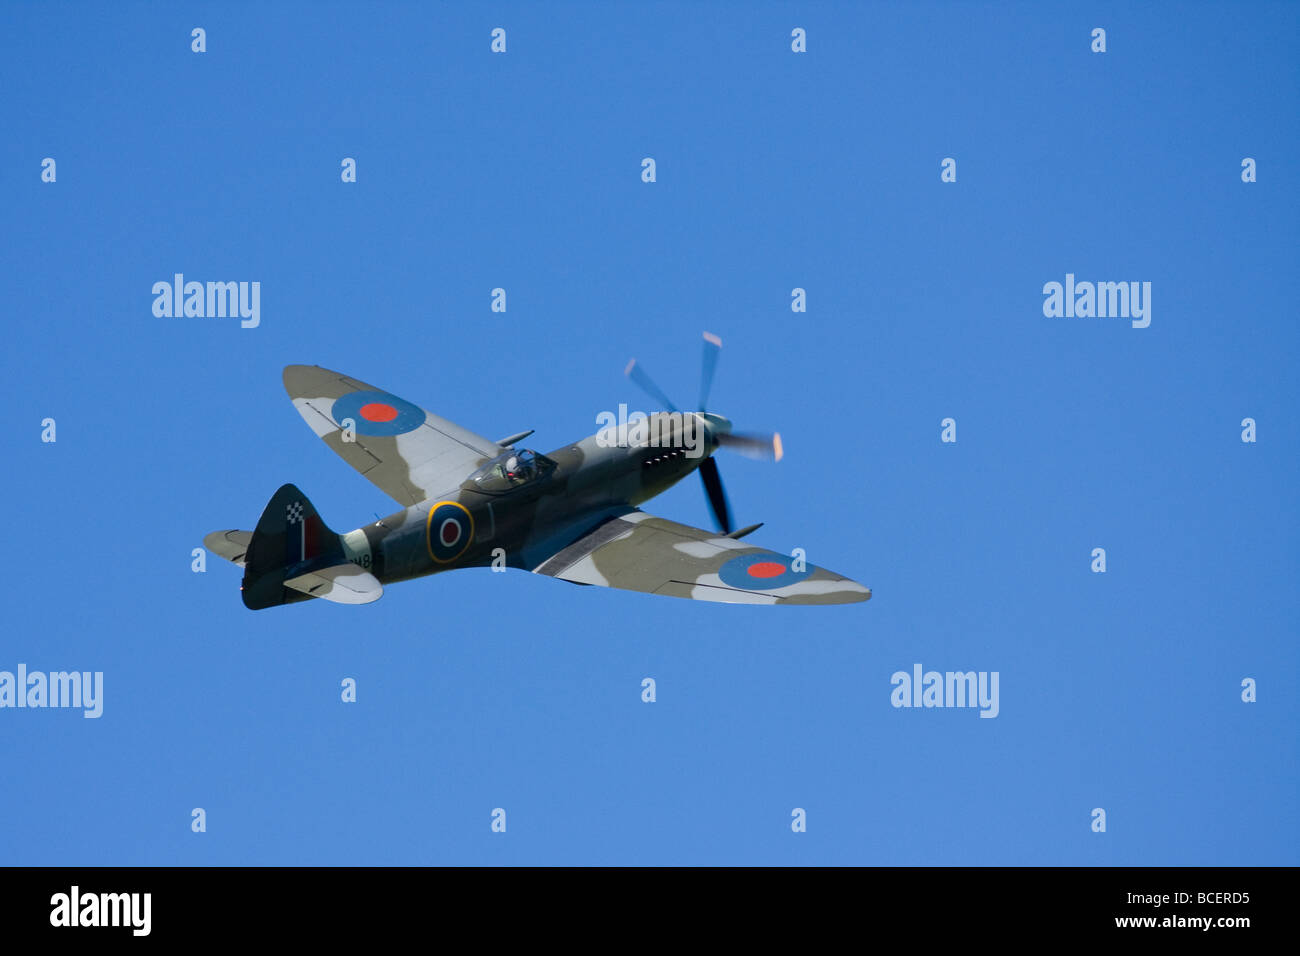 Old Spitfire propeller plane at an airshow - Stock Image